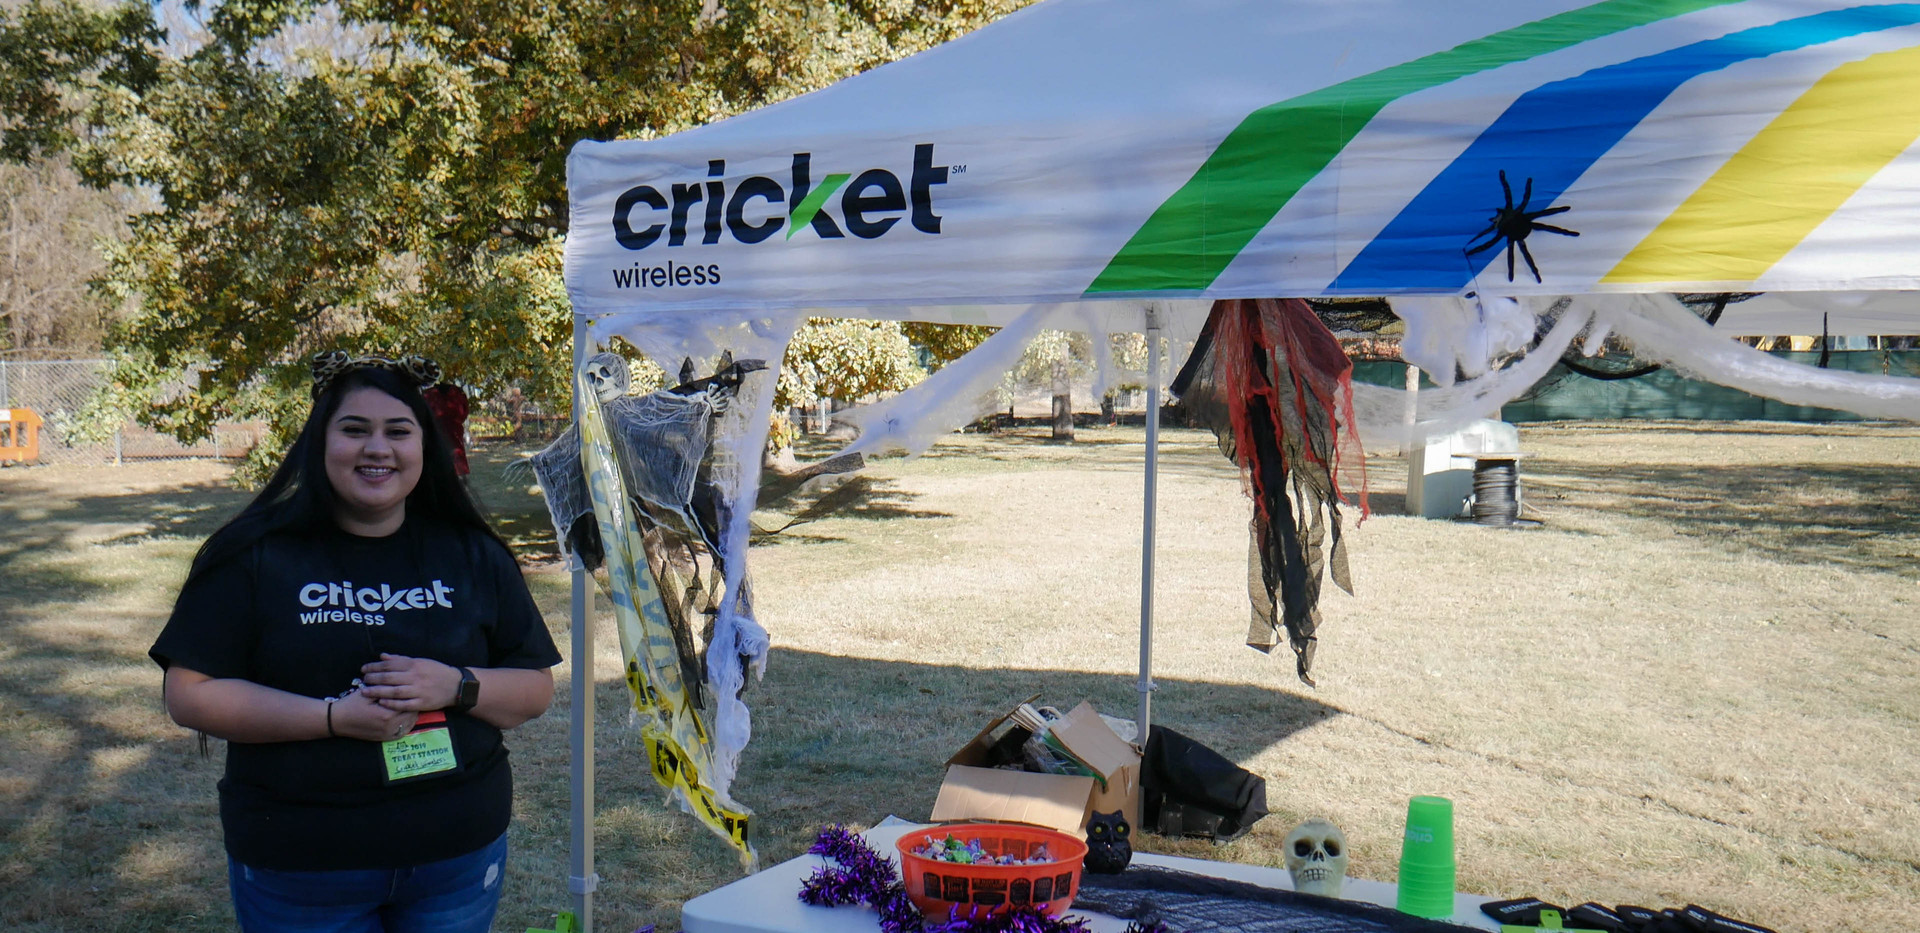 Cricket Wireless.jpg